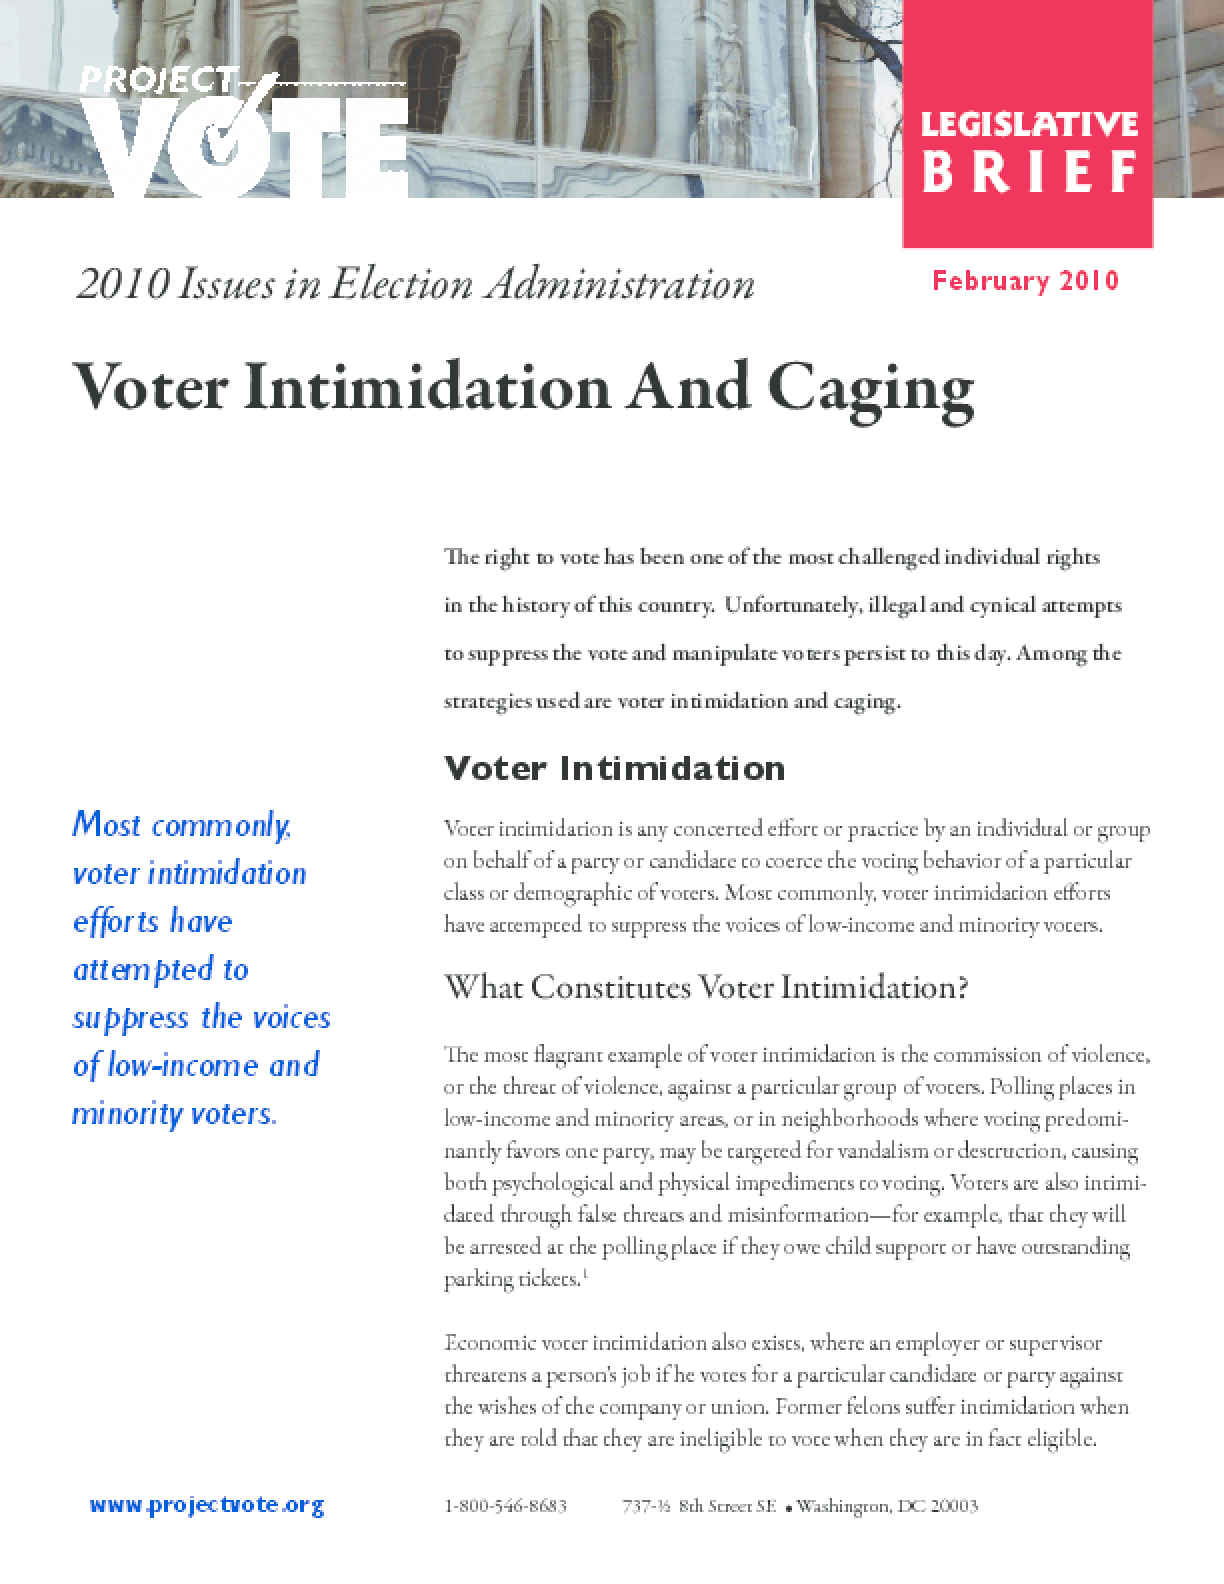 Voter Intimidation and Caging